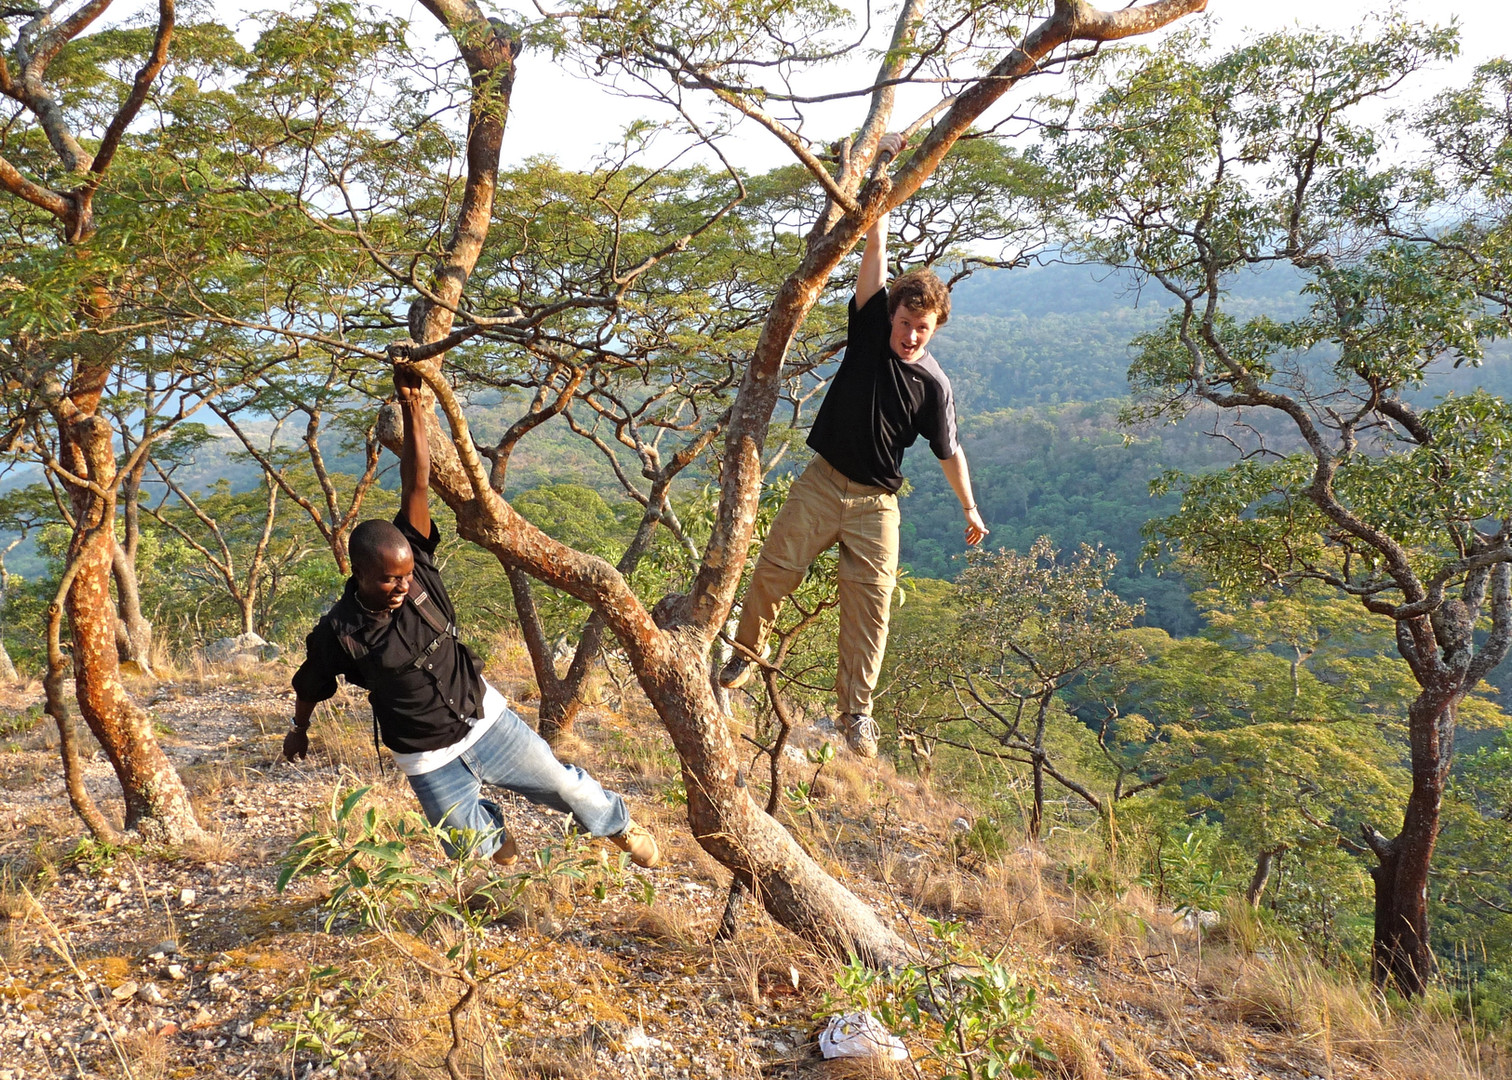 Tommy and Abdul on the way to Bubongo Village. Photo by John Crocker, 2009